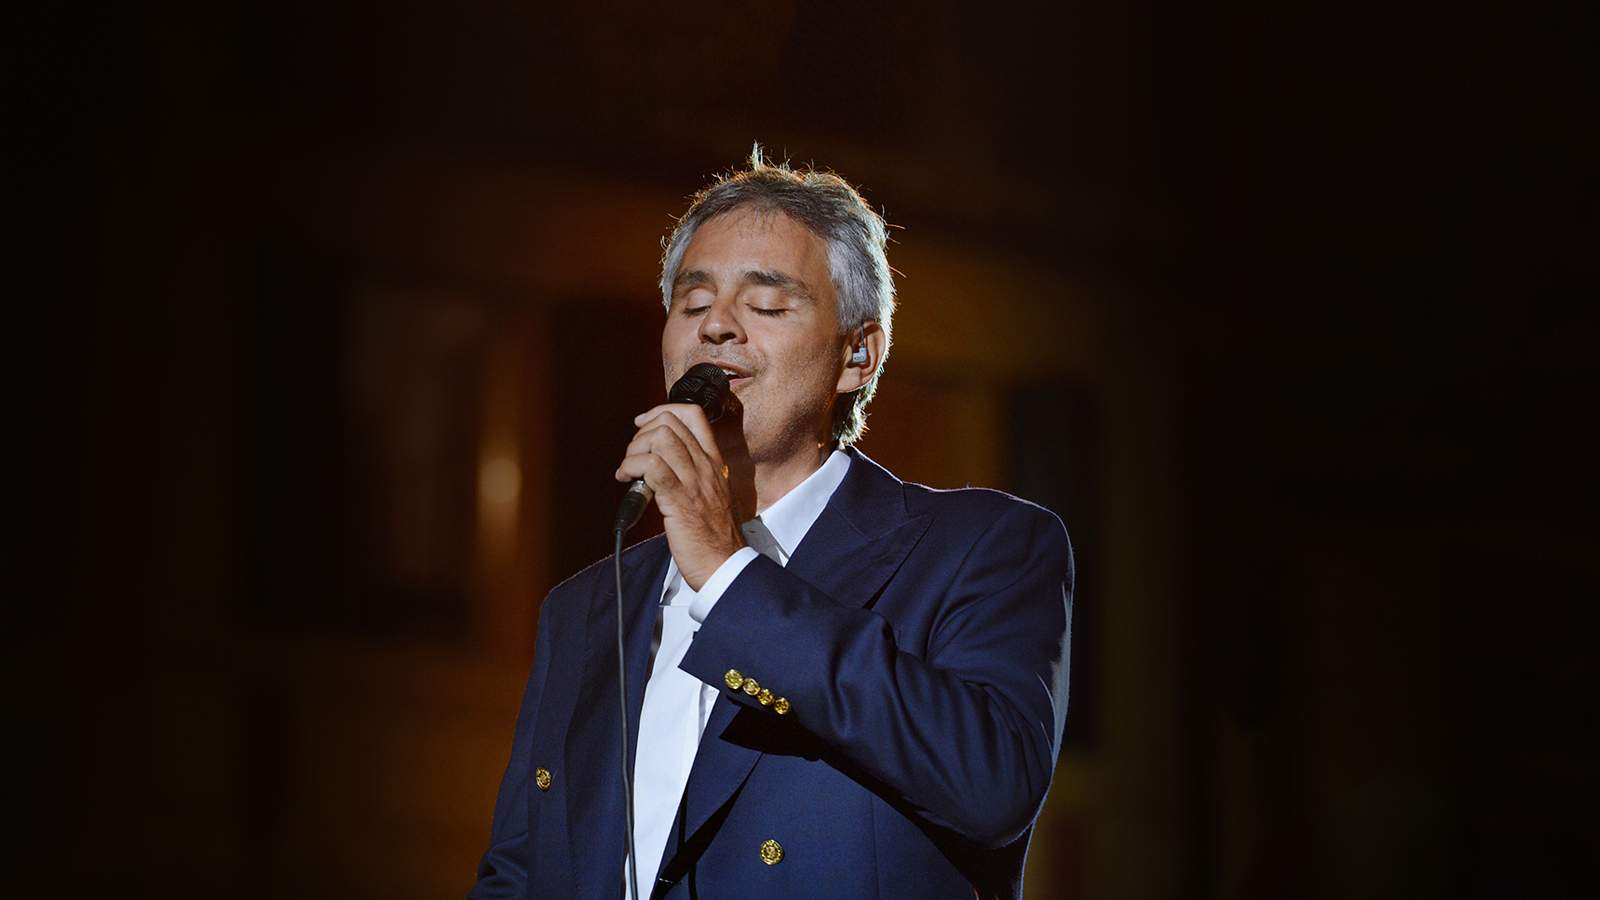 Andrea Bocelli (Rescheduled from 12/9/2020)